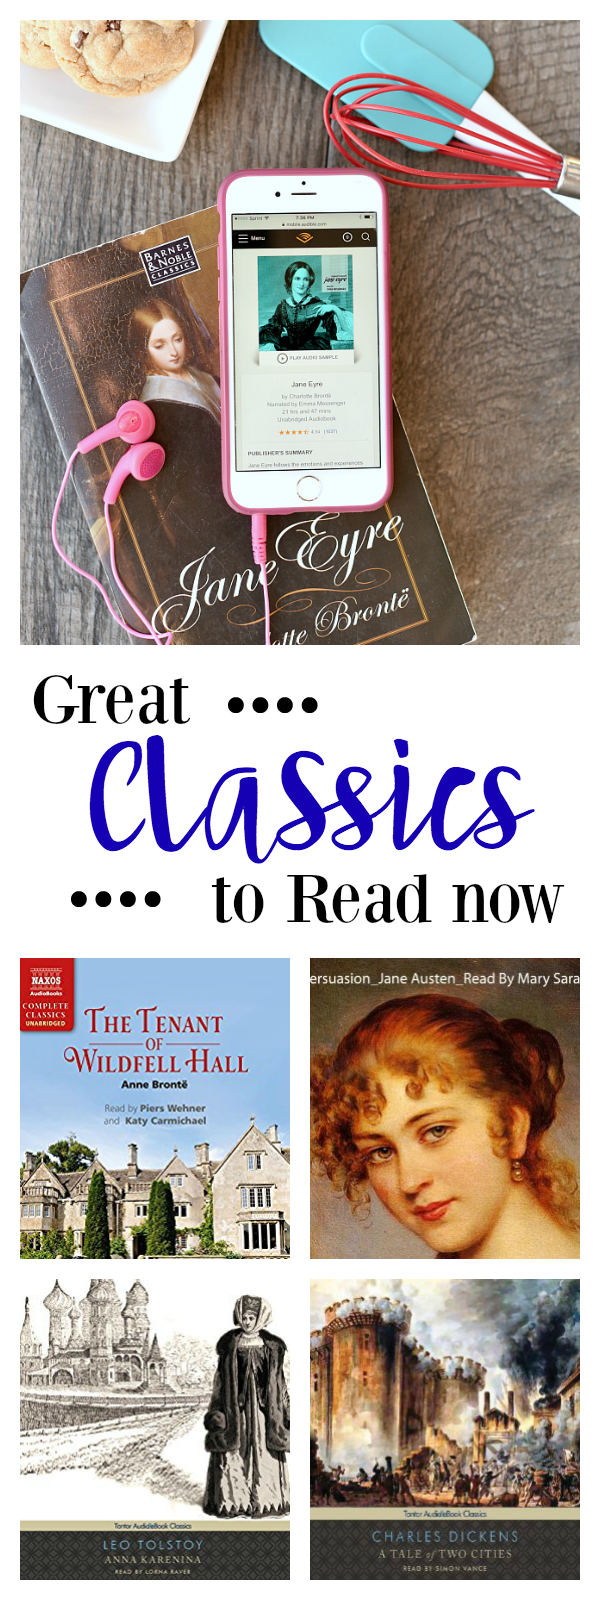 Amber's Bookclub-The Classics - Crazy Little Projects